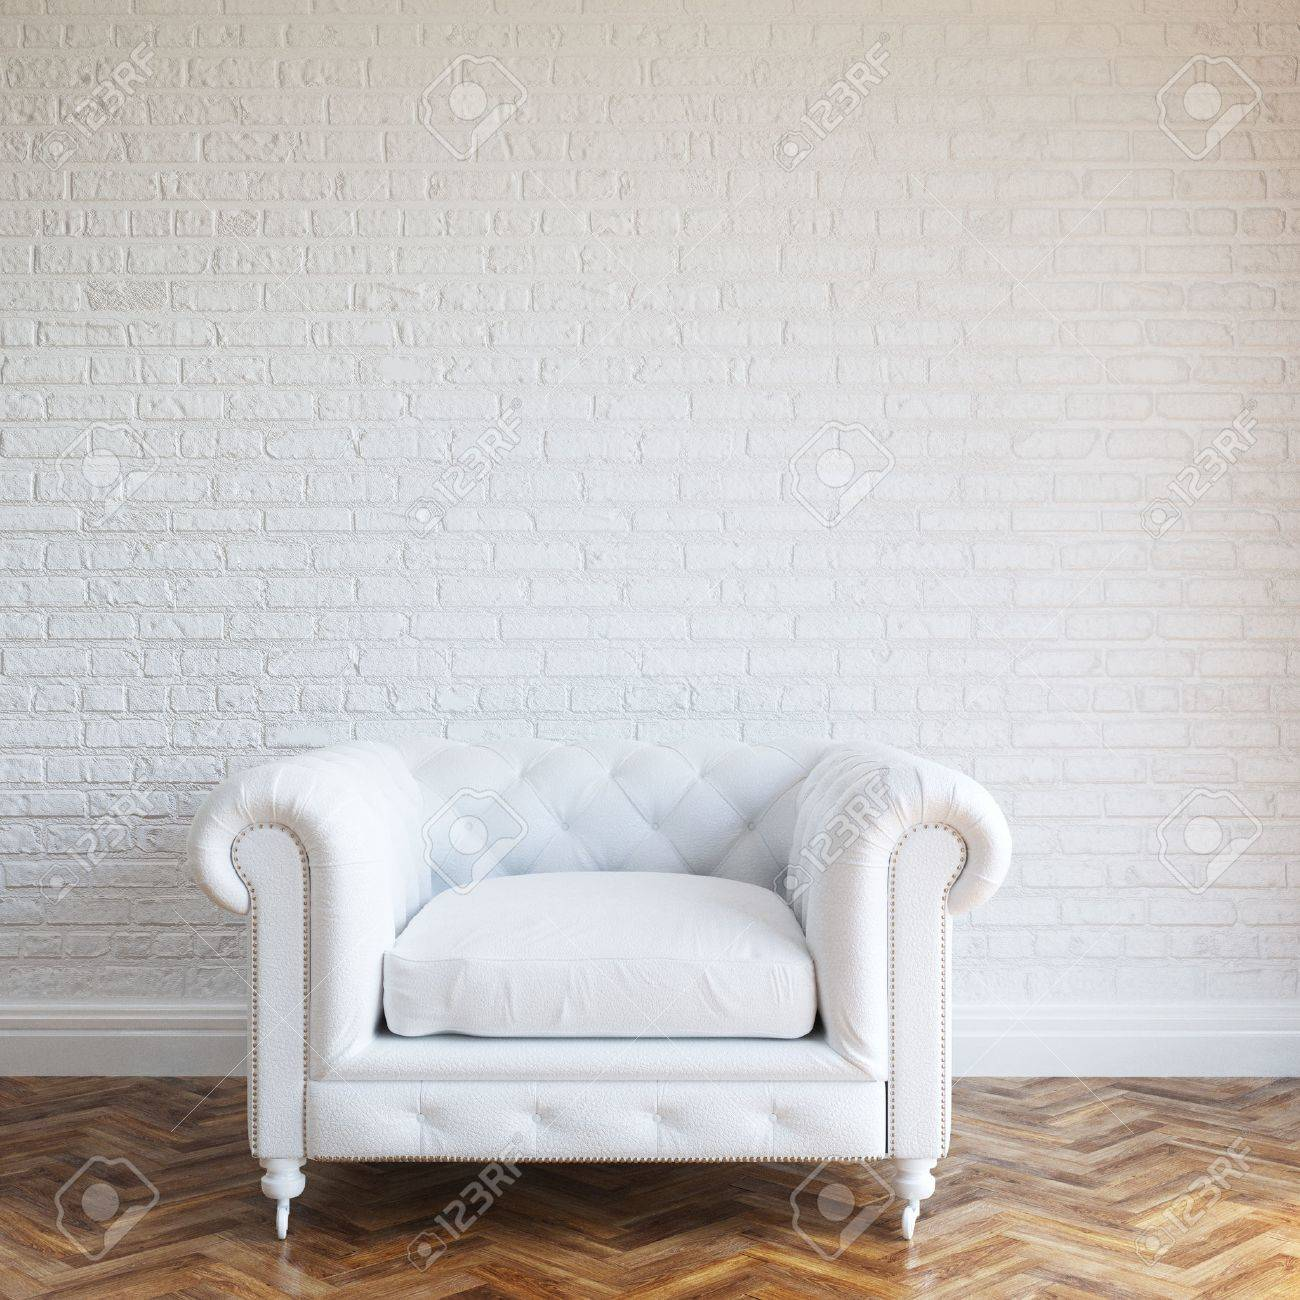 White Walls Brick Interior With Classic Leather Armchair - 28391610